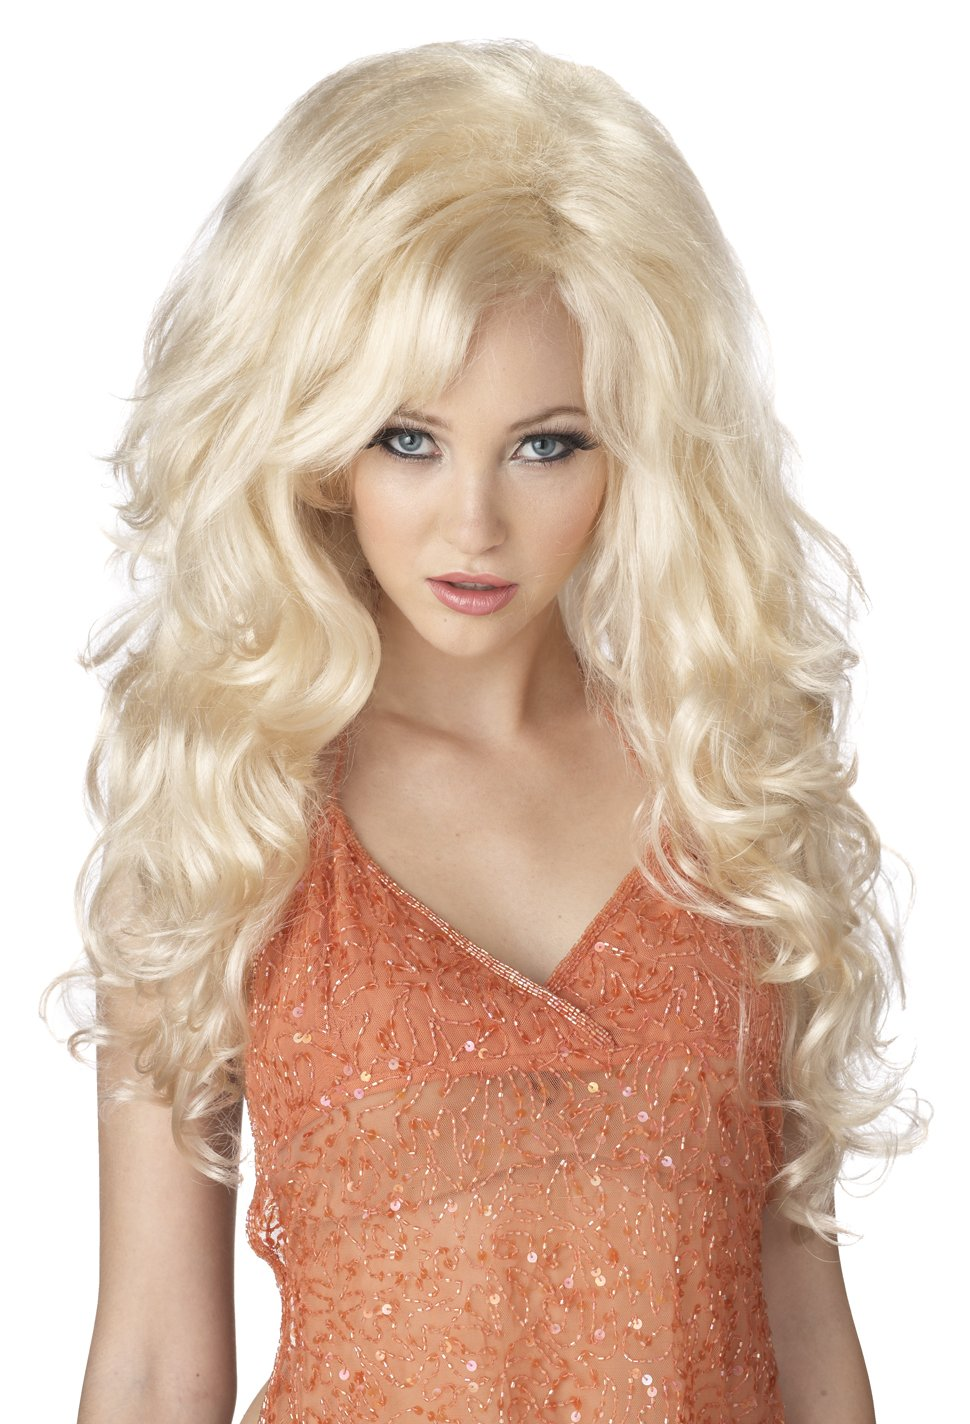 Sexy Vixen Southern Bombshell  Dolly Parton Adult Costume Wig #70631